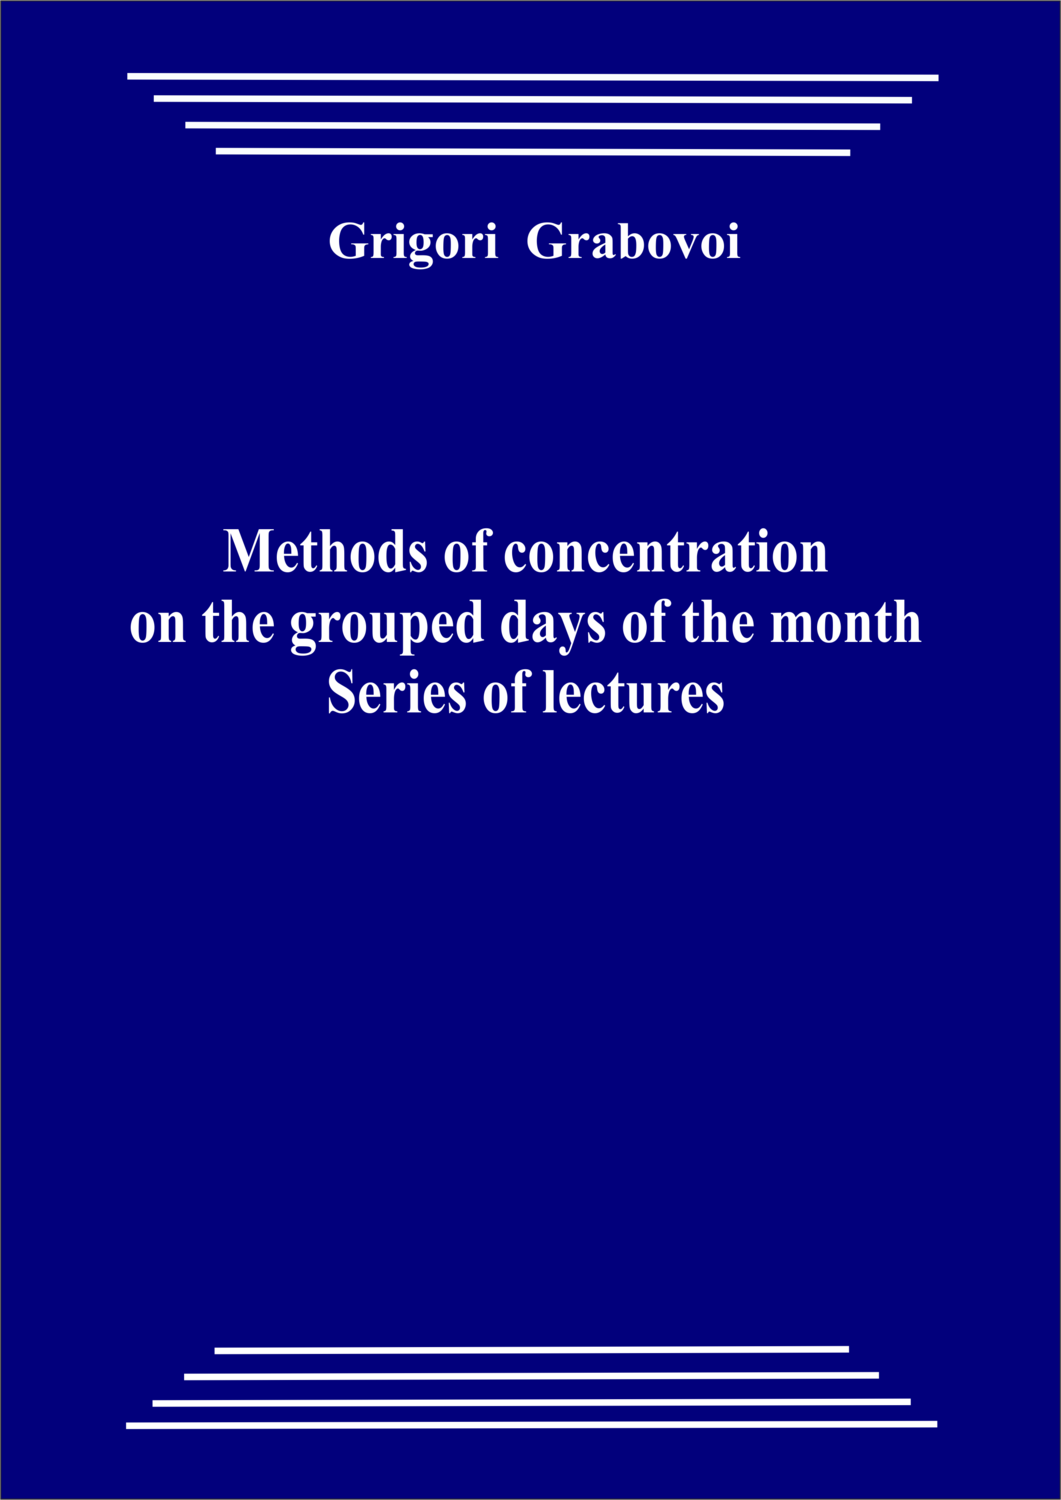 Methods of concentration on the grouped days of the month